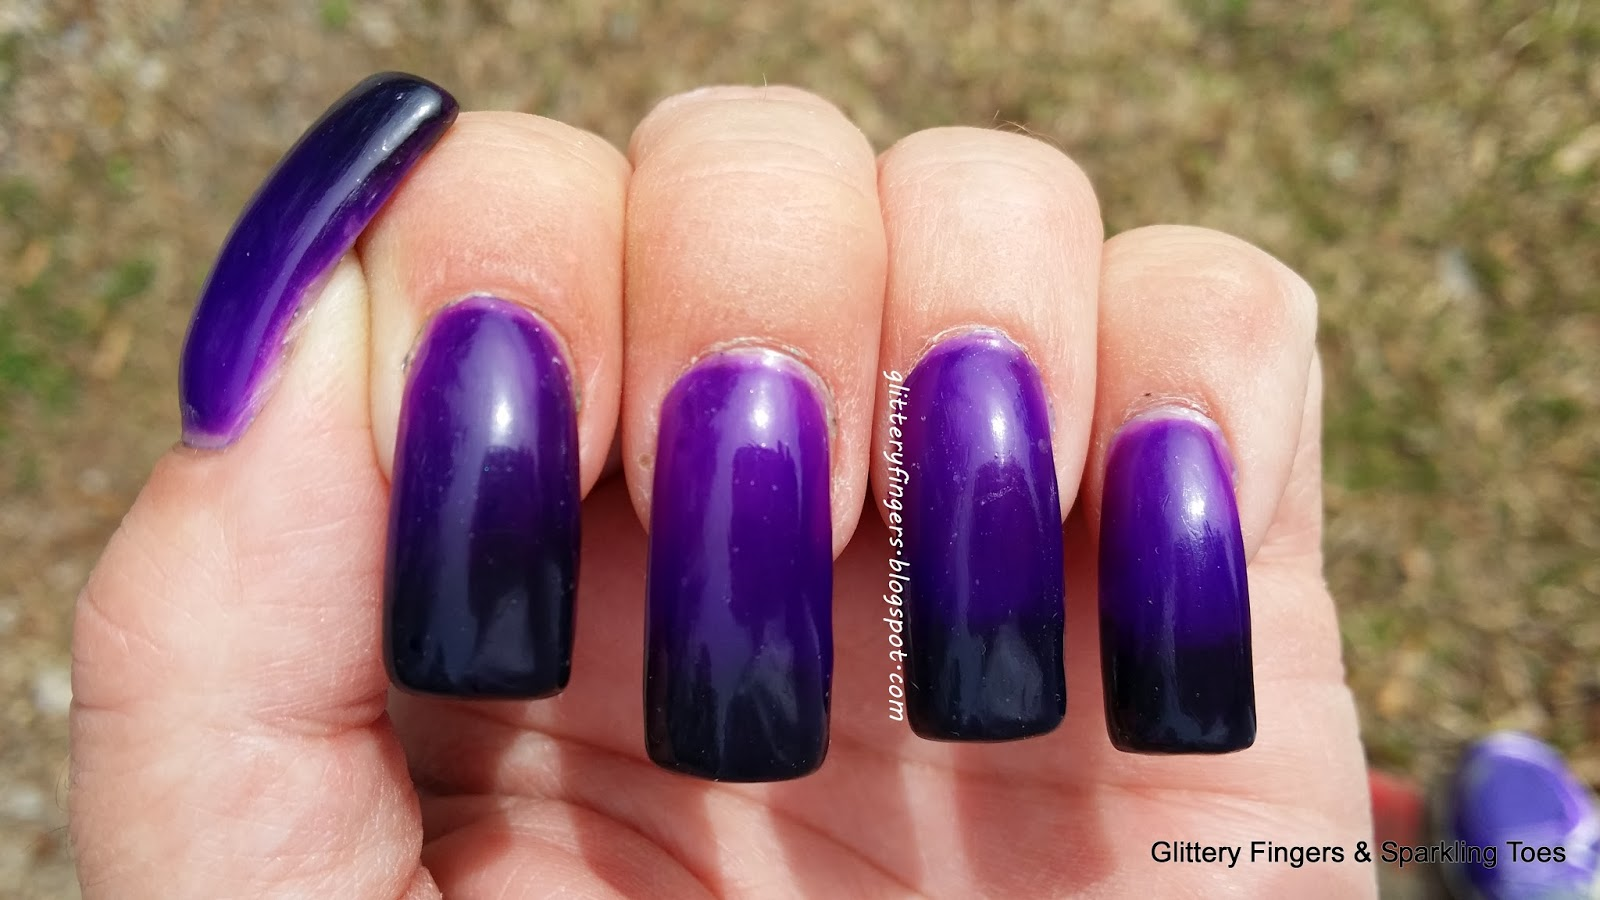 Glittery Fingers & Sparkling Toes: Black & Purple Gradient French Tips